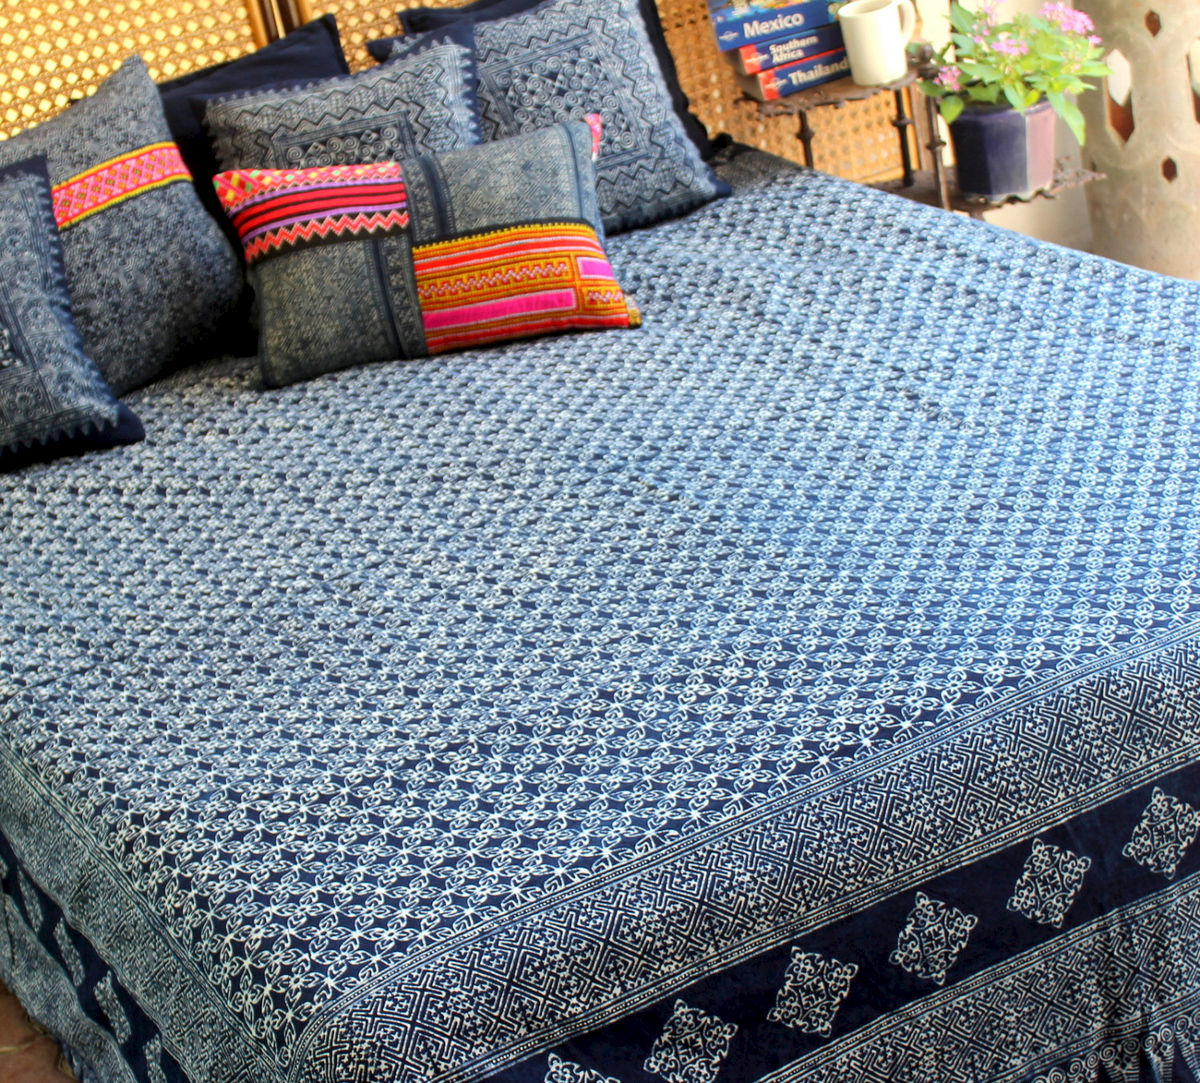 Queen Duvet Cover - Natural Hmong Indigo Batik Cotton  - product images  of